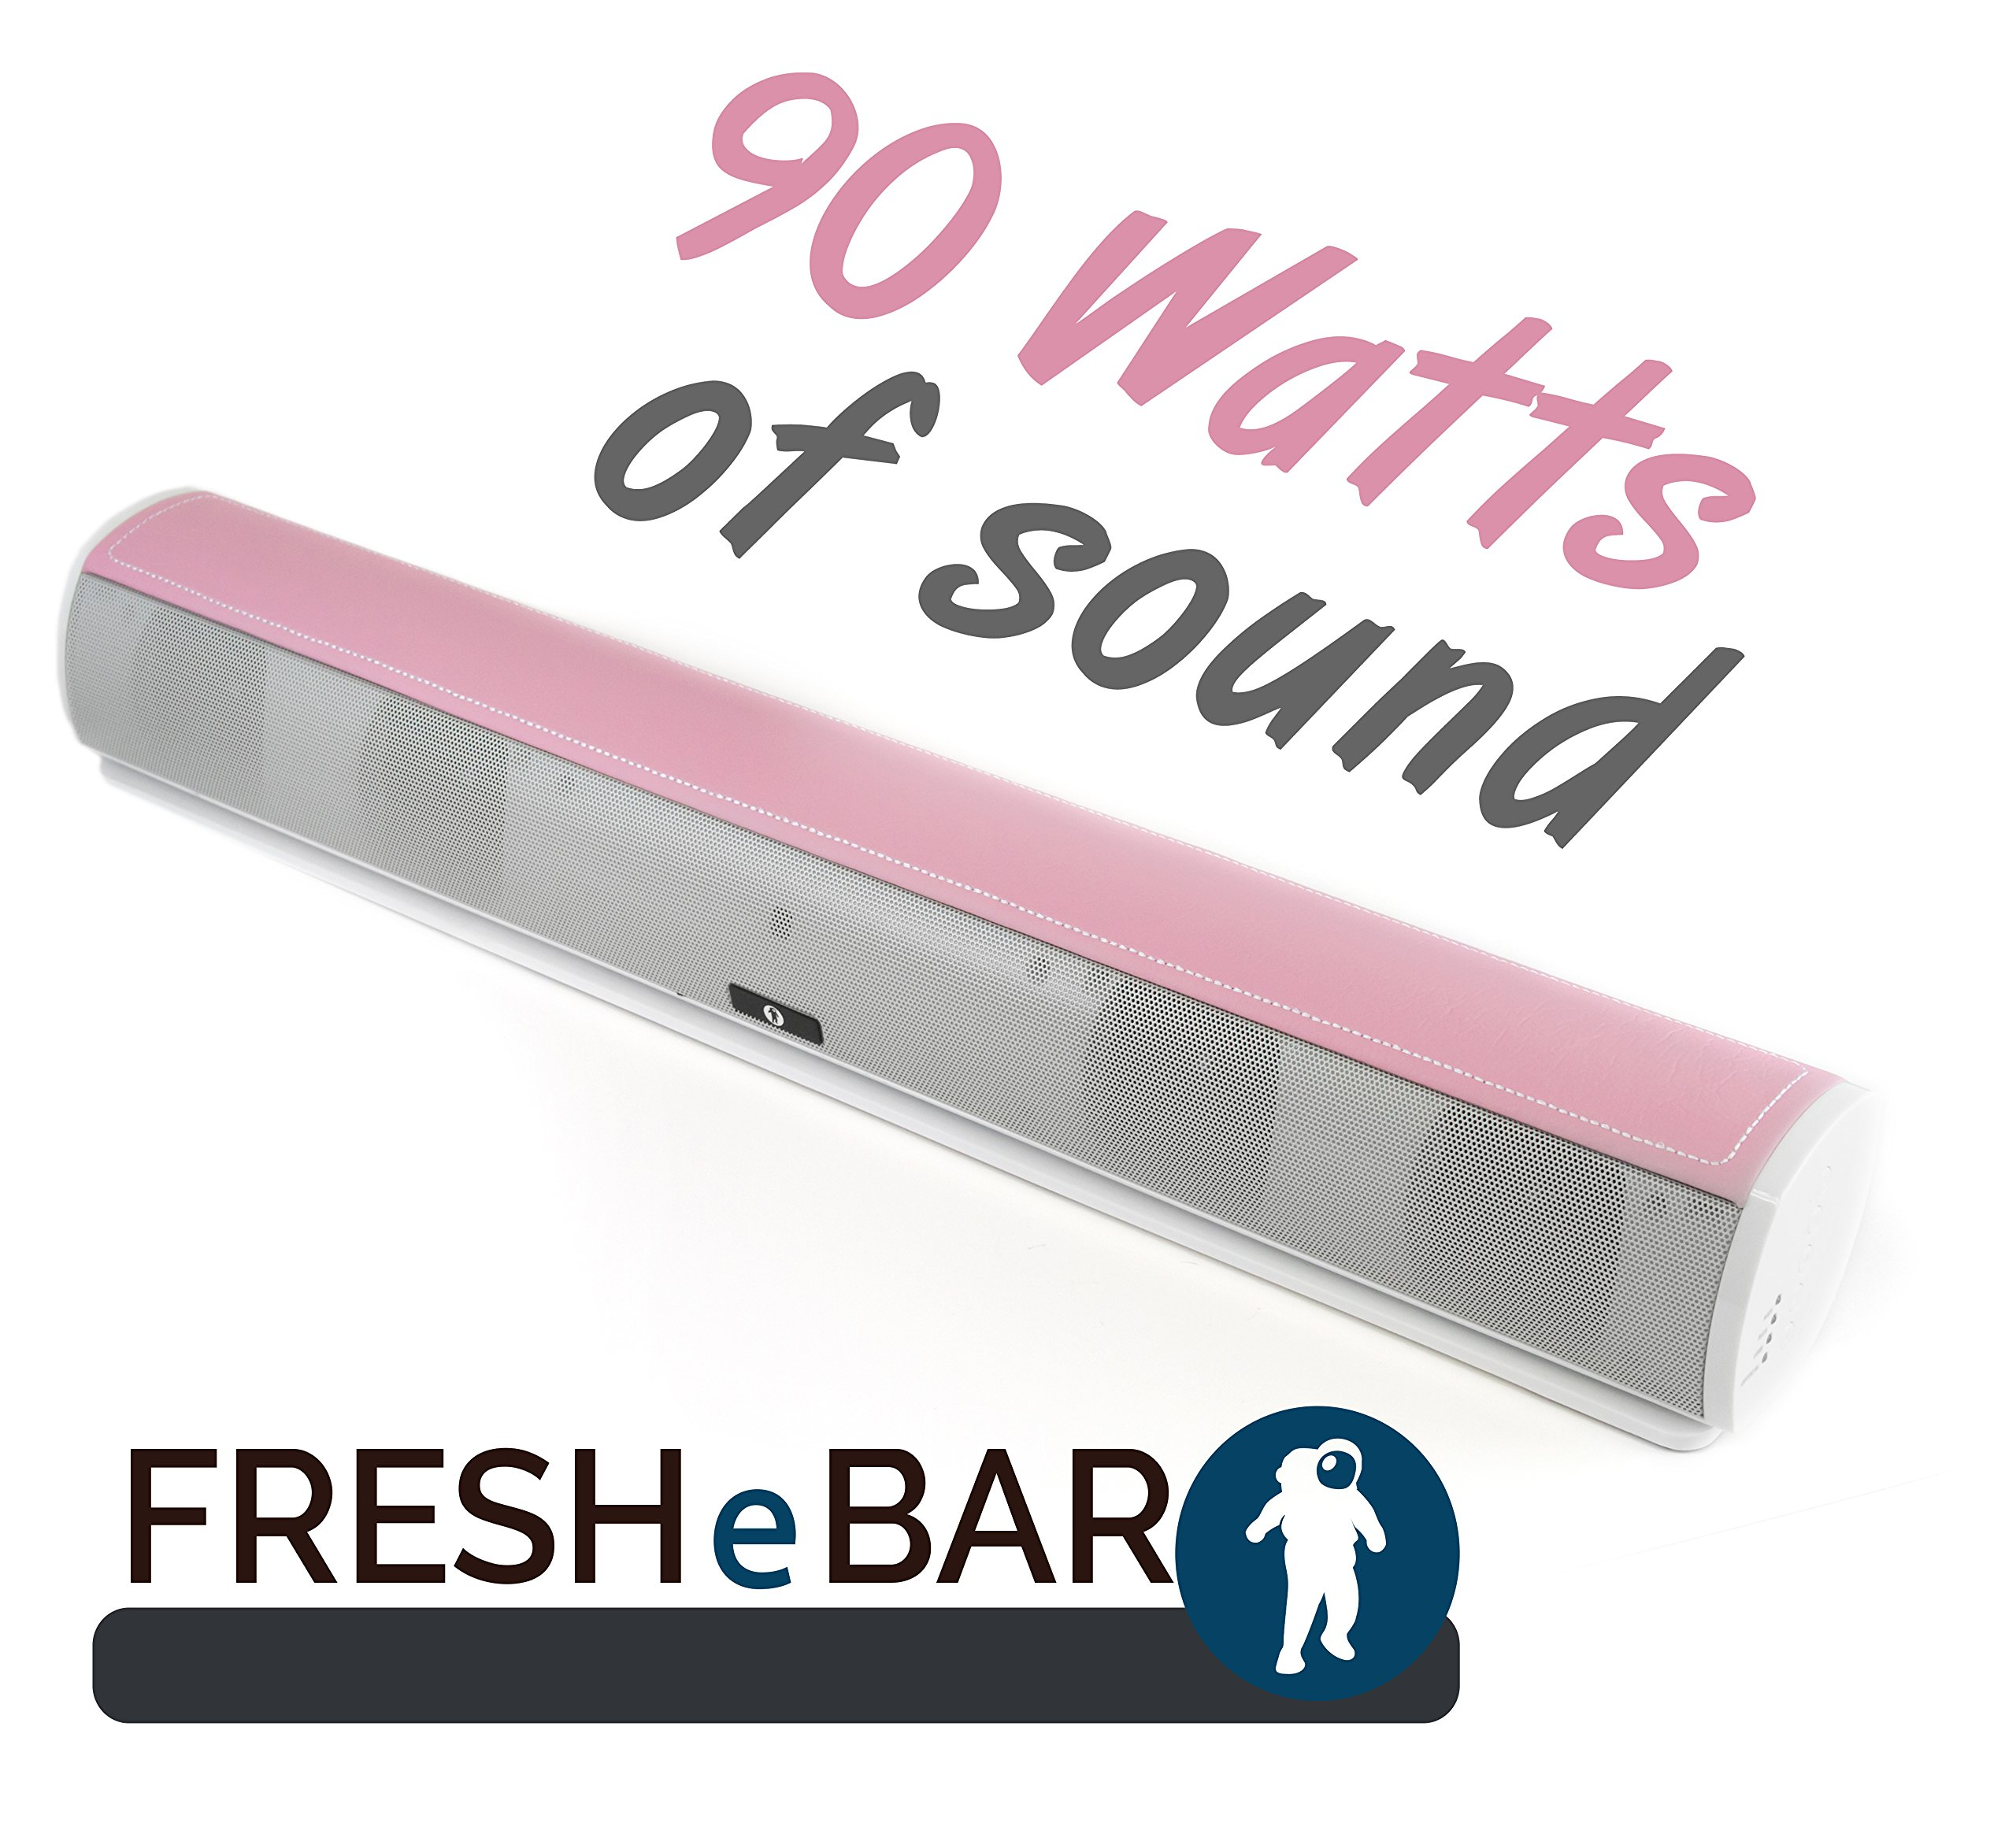 Bluetooth Leather Television Sound Bar - FRESHeBAR TV Soundbar - 24 inch, 90 Watt with Built-in Subwoofer - White / Pink Leather